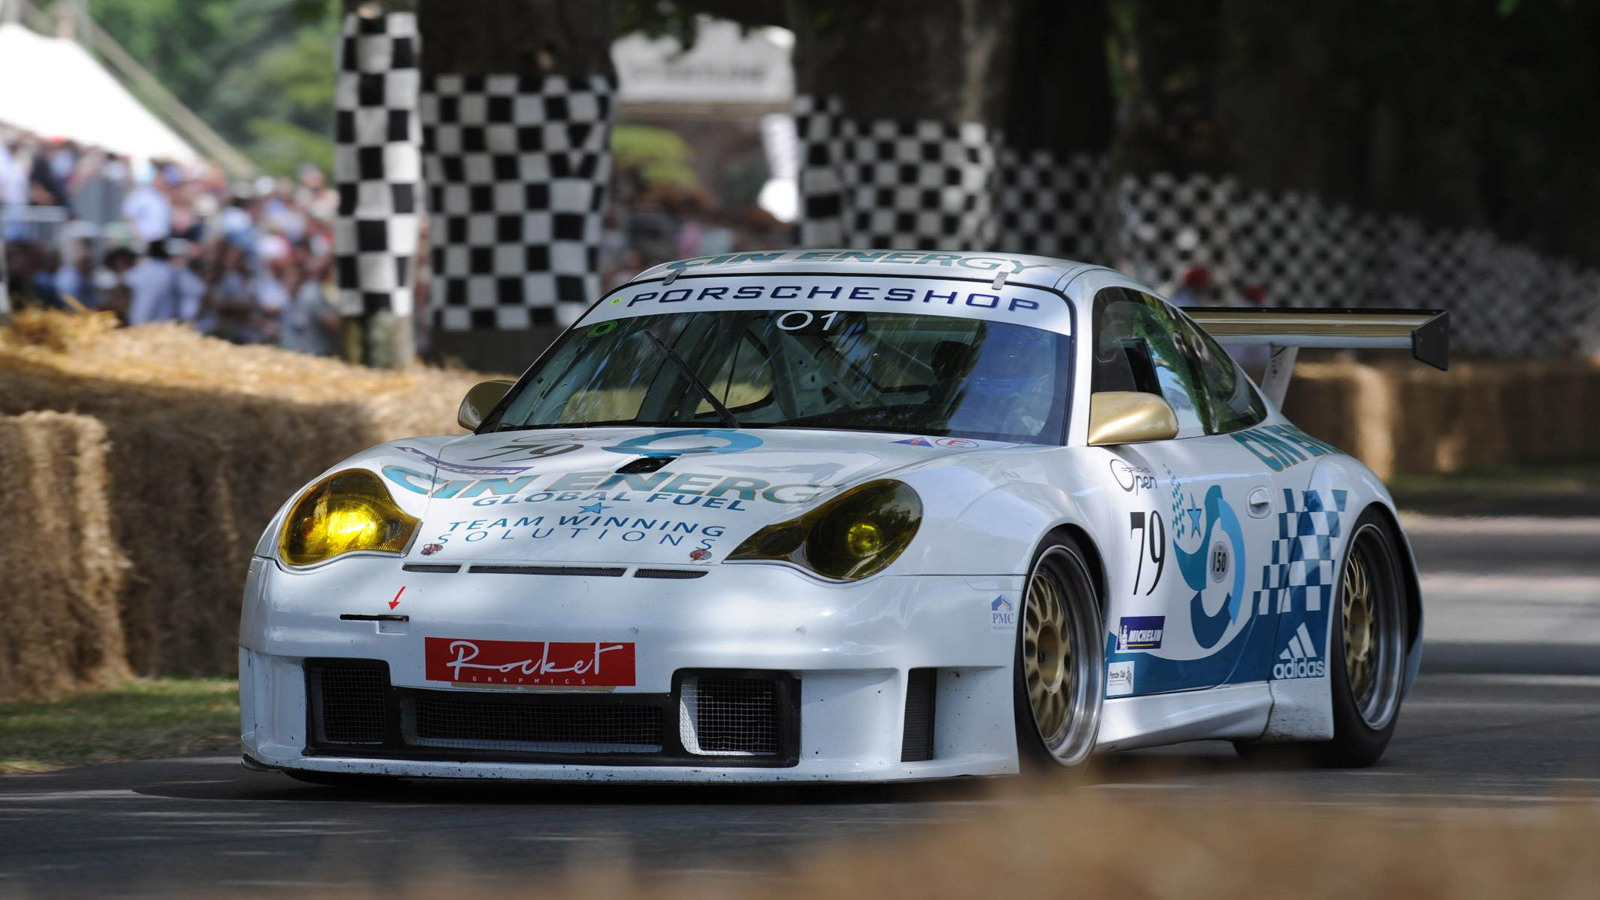 Historic Porsche 911s at the Goodwood Festival of Speed